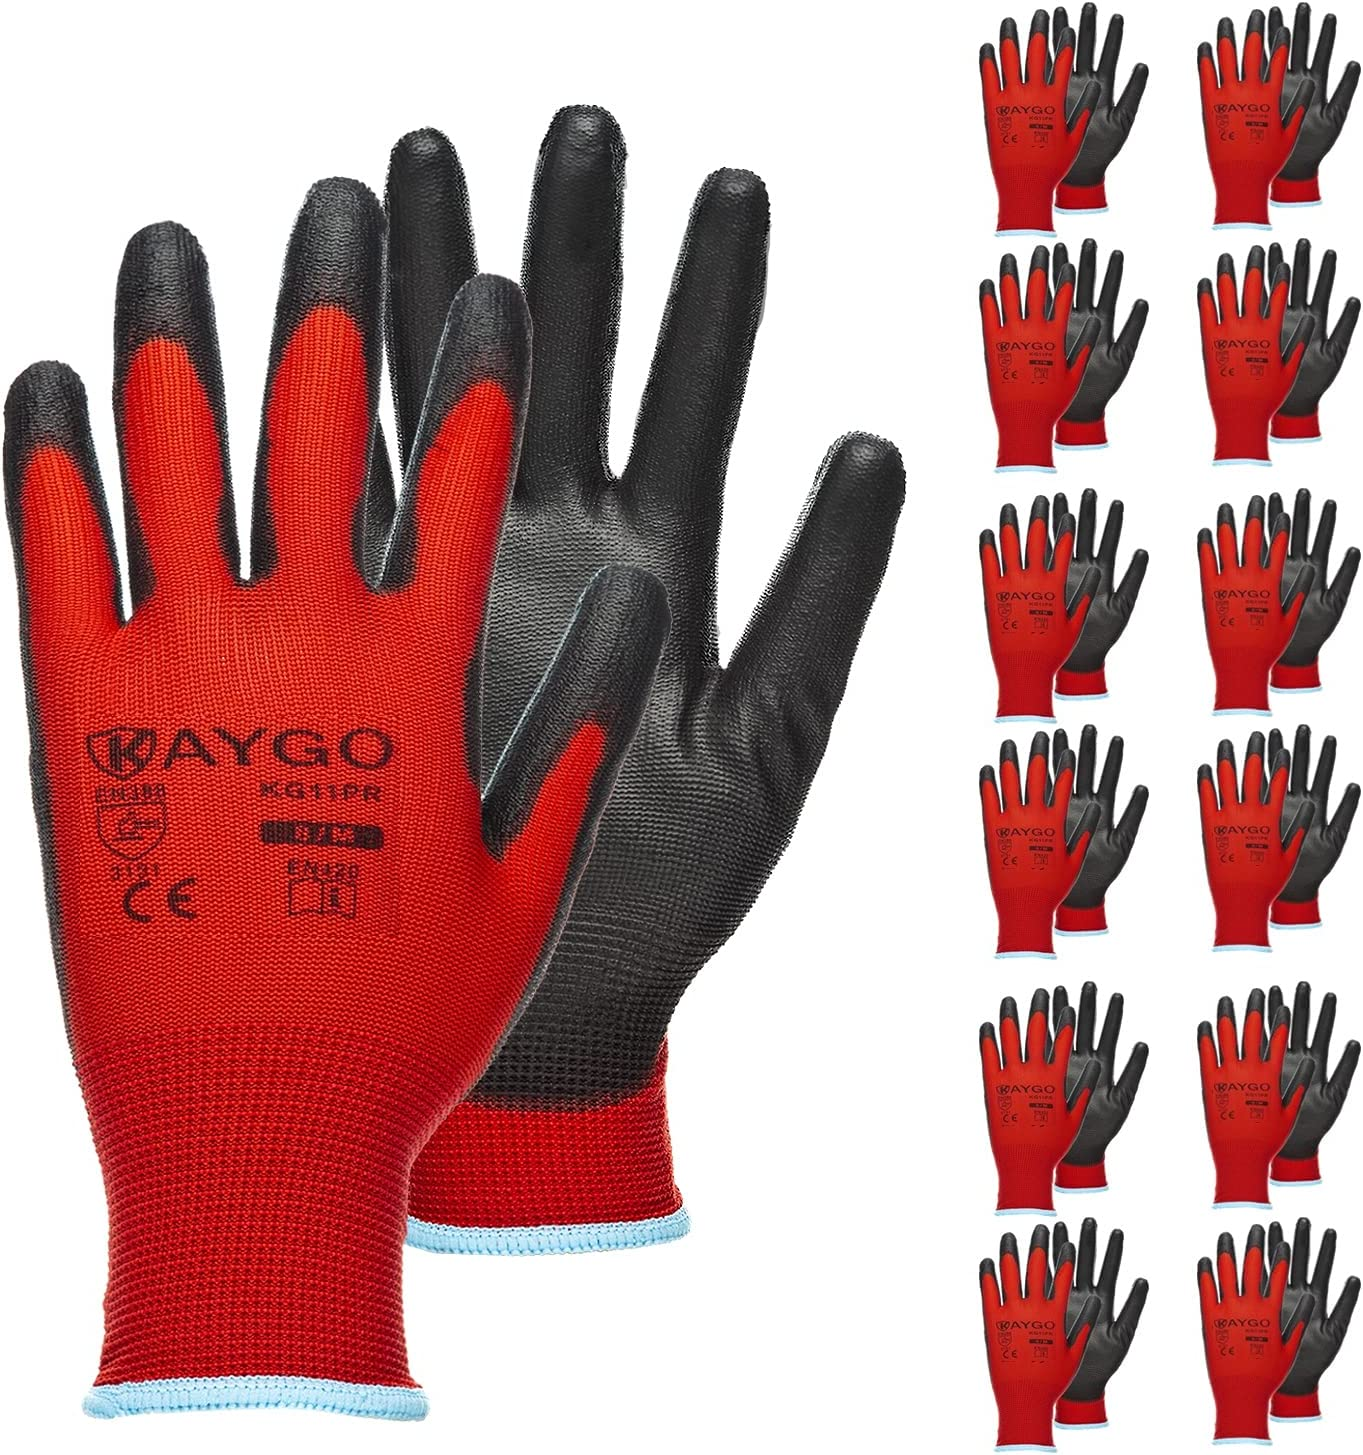 Safety Work Gloves PU Coated-12 Pairs,KAYGO KG11PB, Seamless Knit Glove with Polyurethane Coated Smooth Grip on Palm & Fingers, for Men and Women, Ideal for General Duty Work (Large, Red)